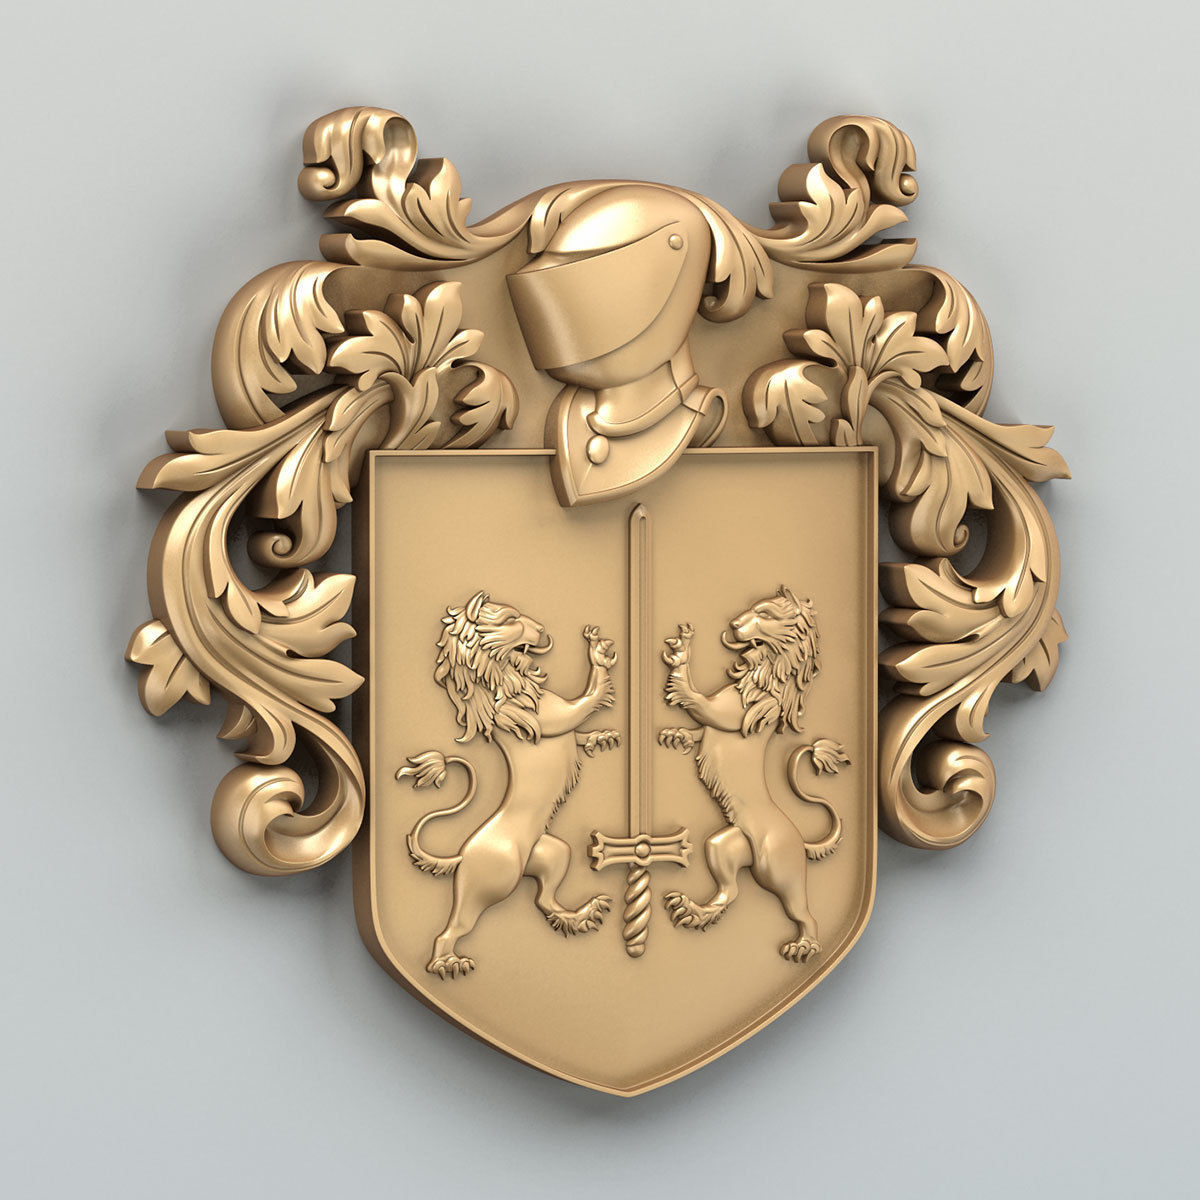 Coat of arms decorative 002